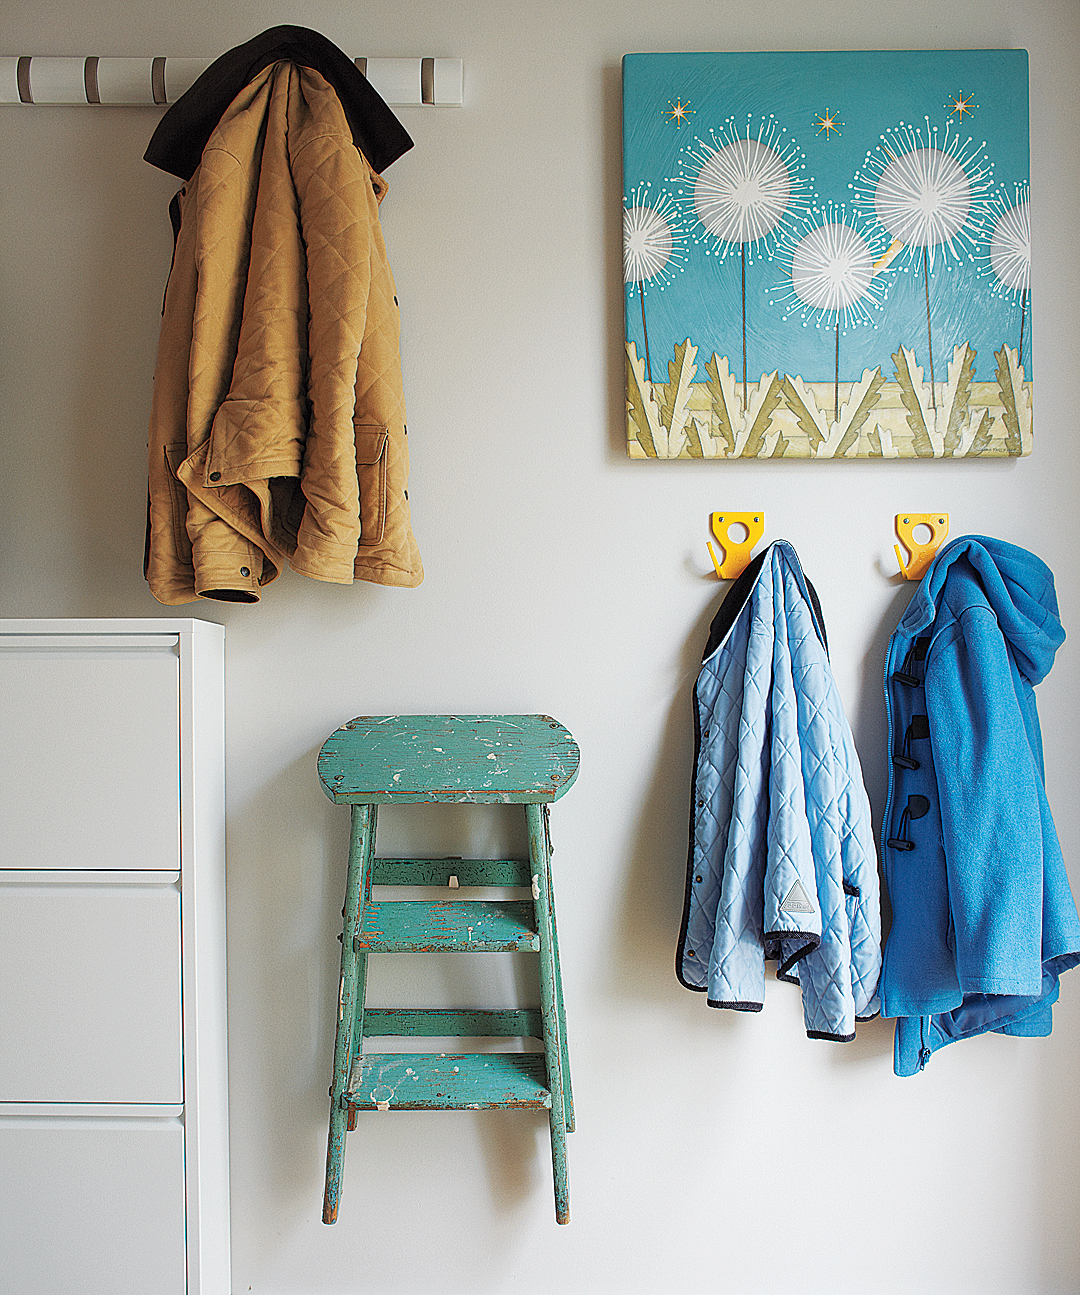 Jackets and step ladder hanging on wall